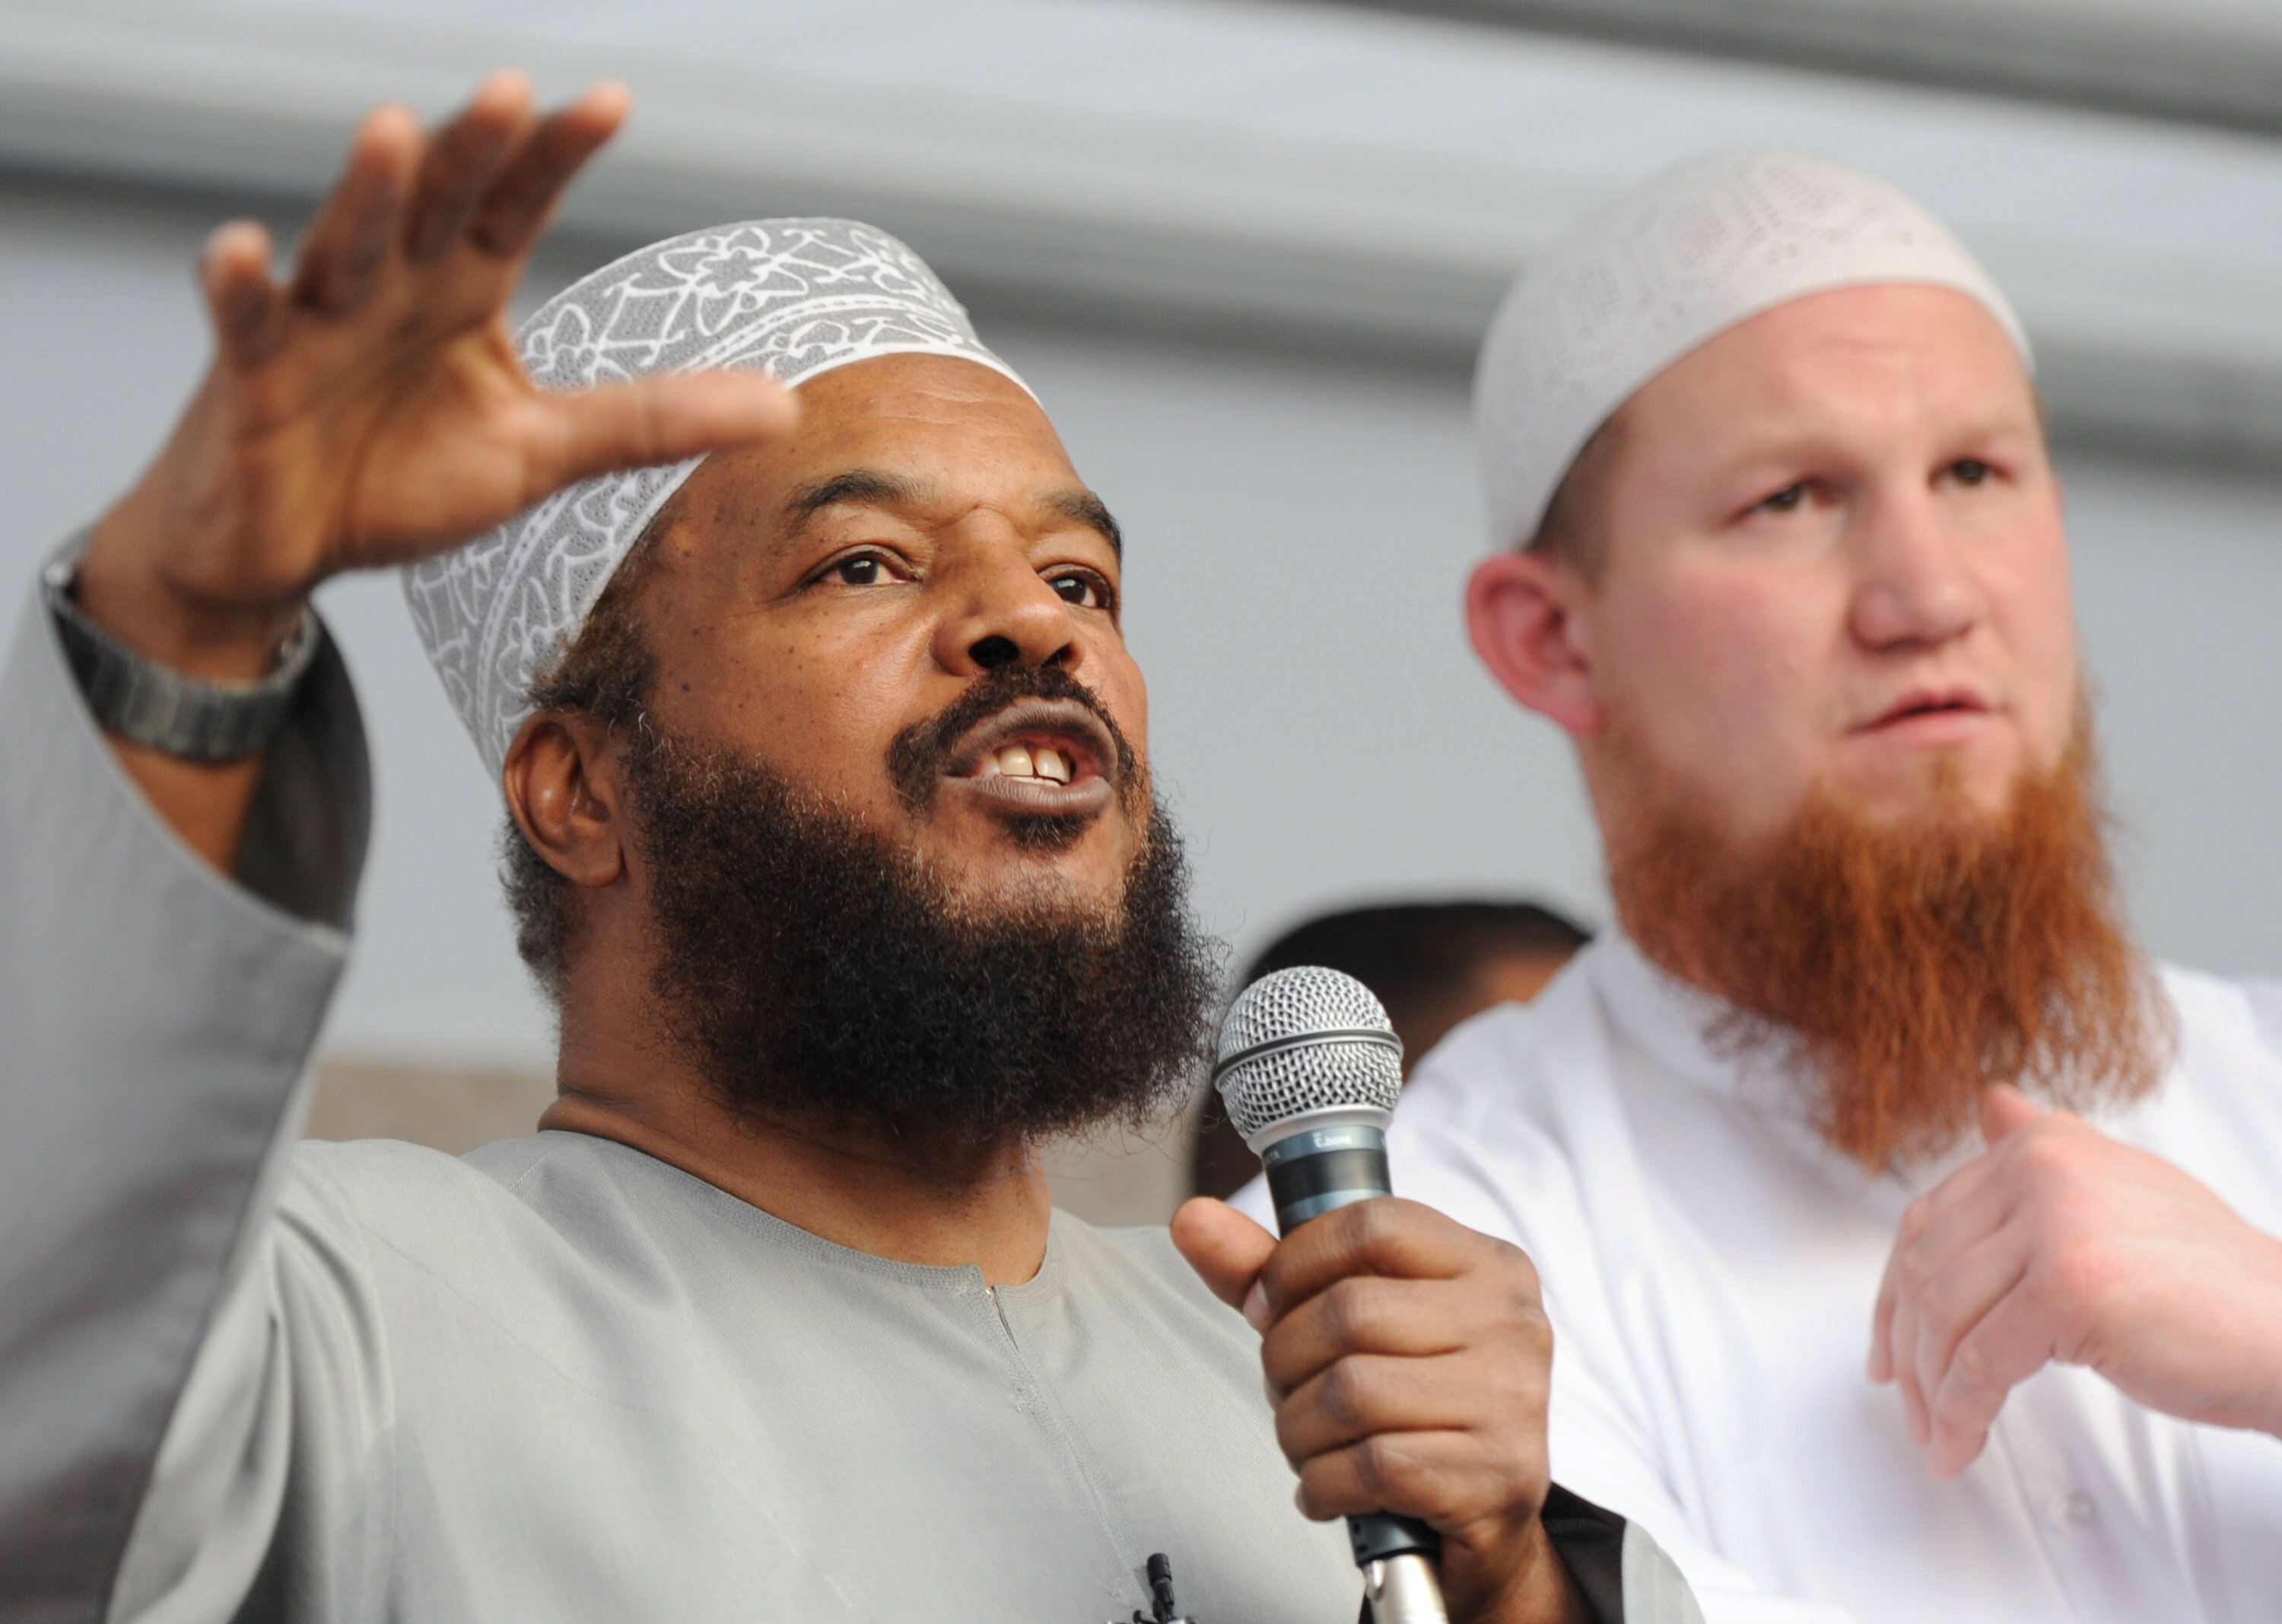 Canadian Islamist preacher to be deported from Philippines